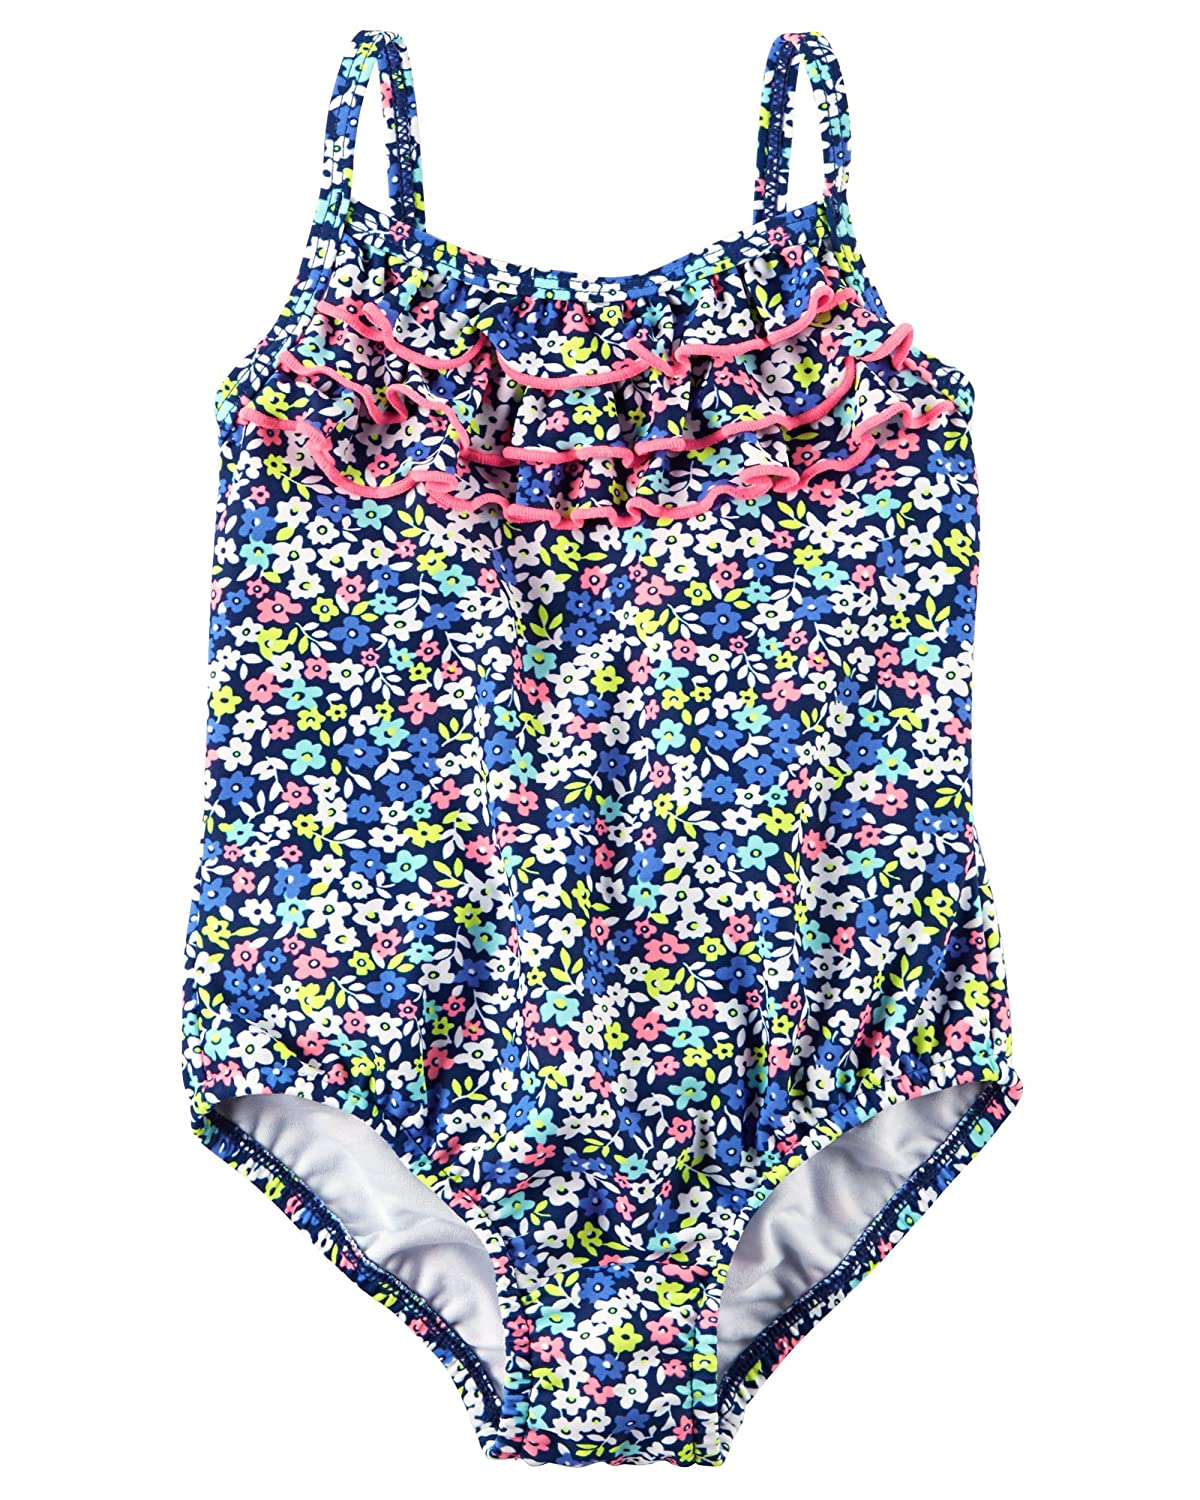 7a5cb2d65 Baby Girls Kids Toddler Two Piece Off-Shoulder Bathing Suit Swimsuit ...